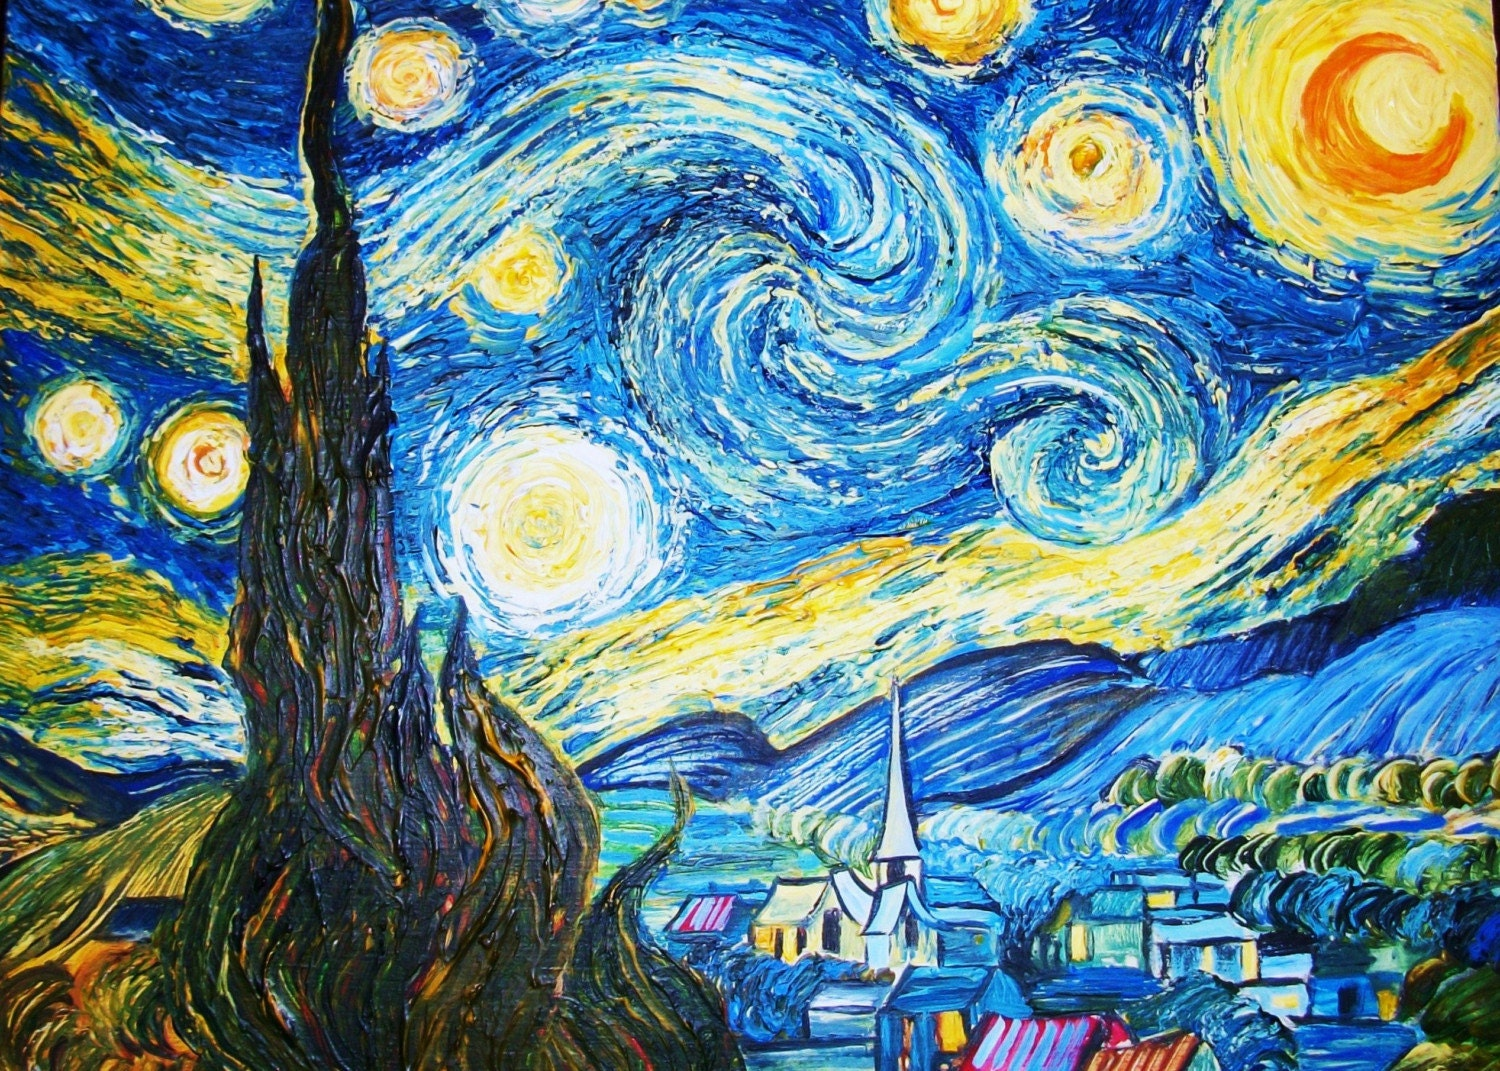 an analysis of the painting starry night by vincent van gogh Van gogh painted this in may of 1890 while he was staying in a mental hospital  in  starry night with a cypress tree and swirling sky  in eternity's gate: the  spiritual vision of vincent van gogh, kathleen powers erickson.